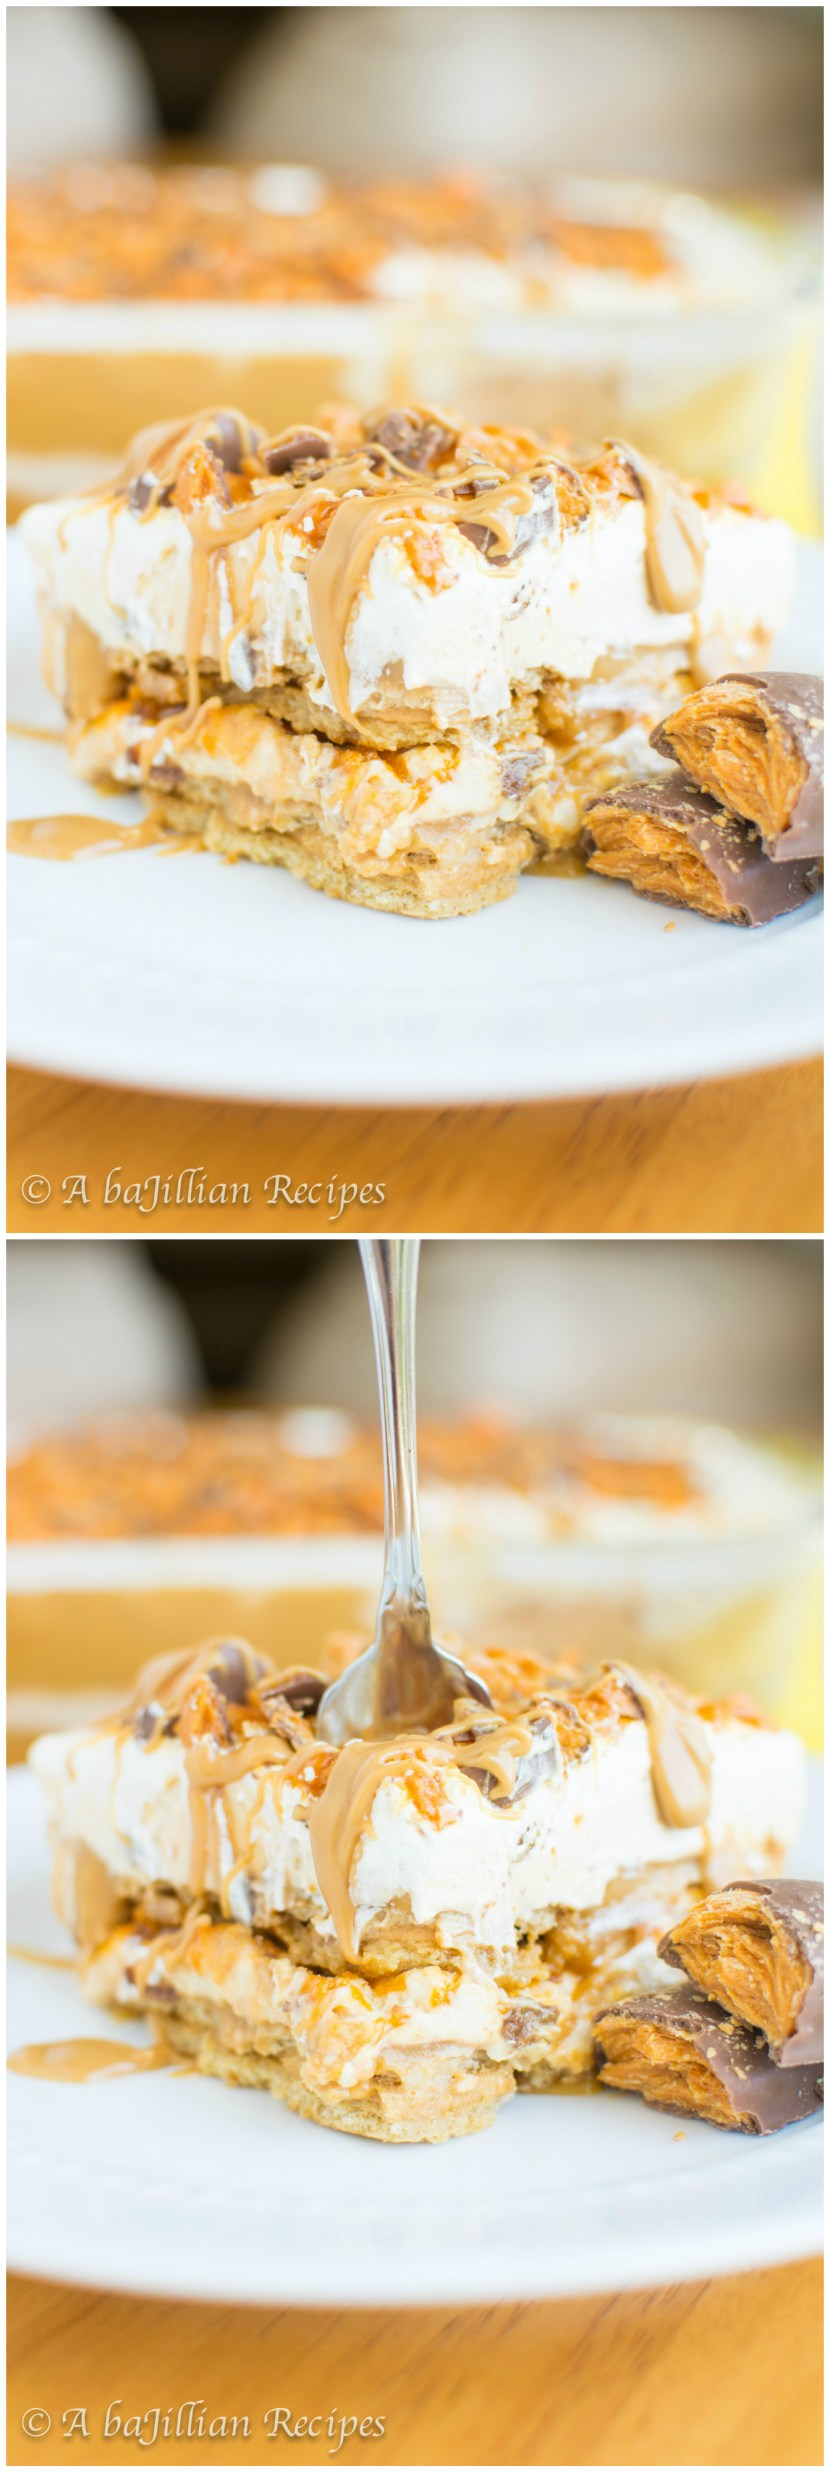 Butterfinger Dessert Lasagna | A baJillian Recipes